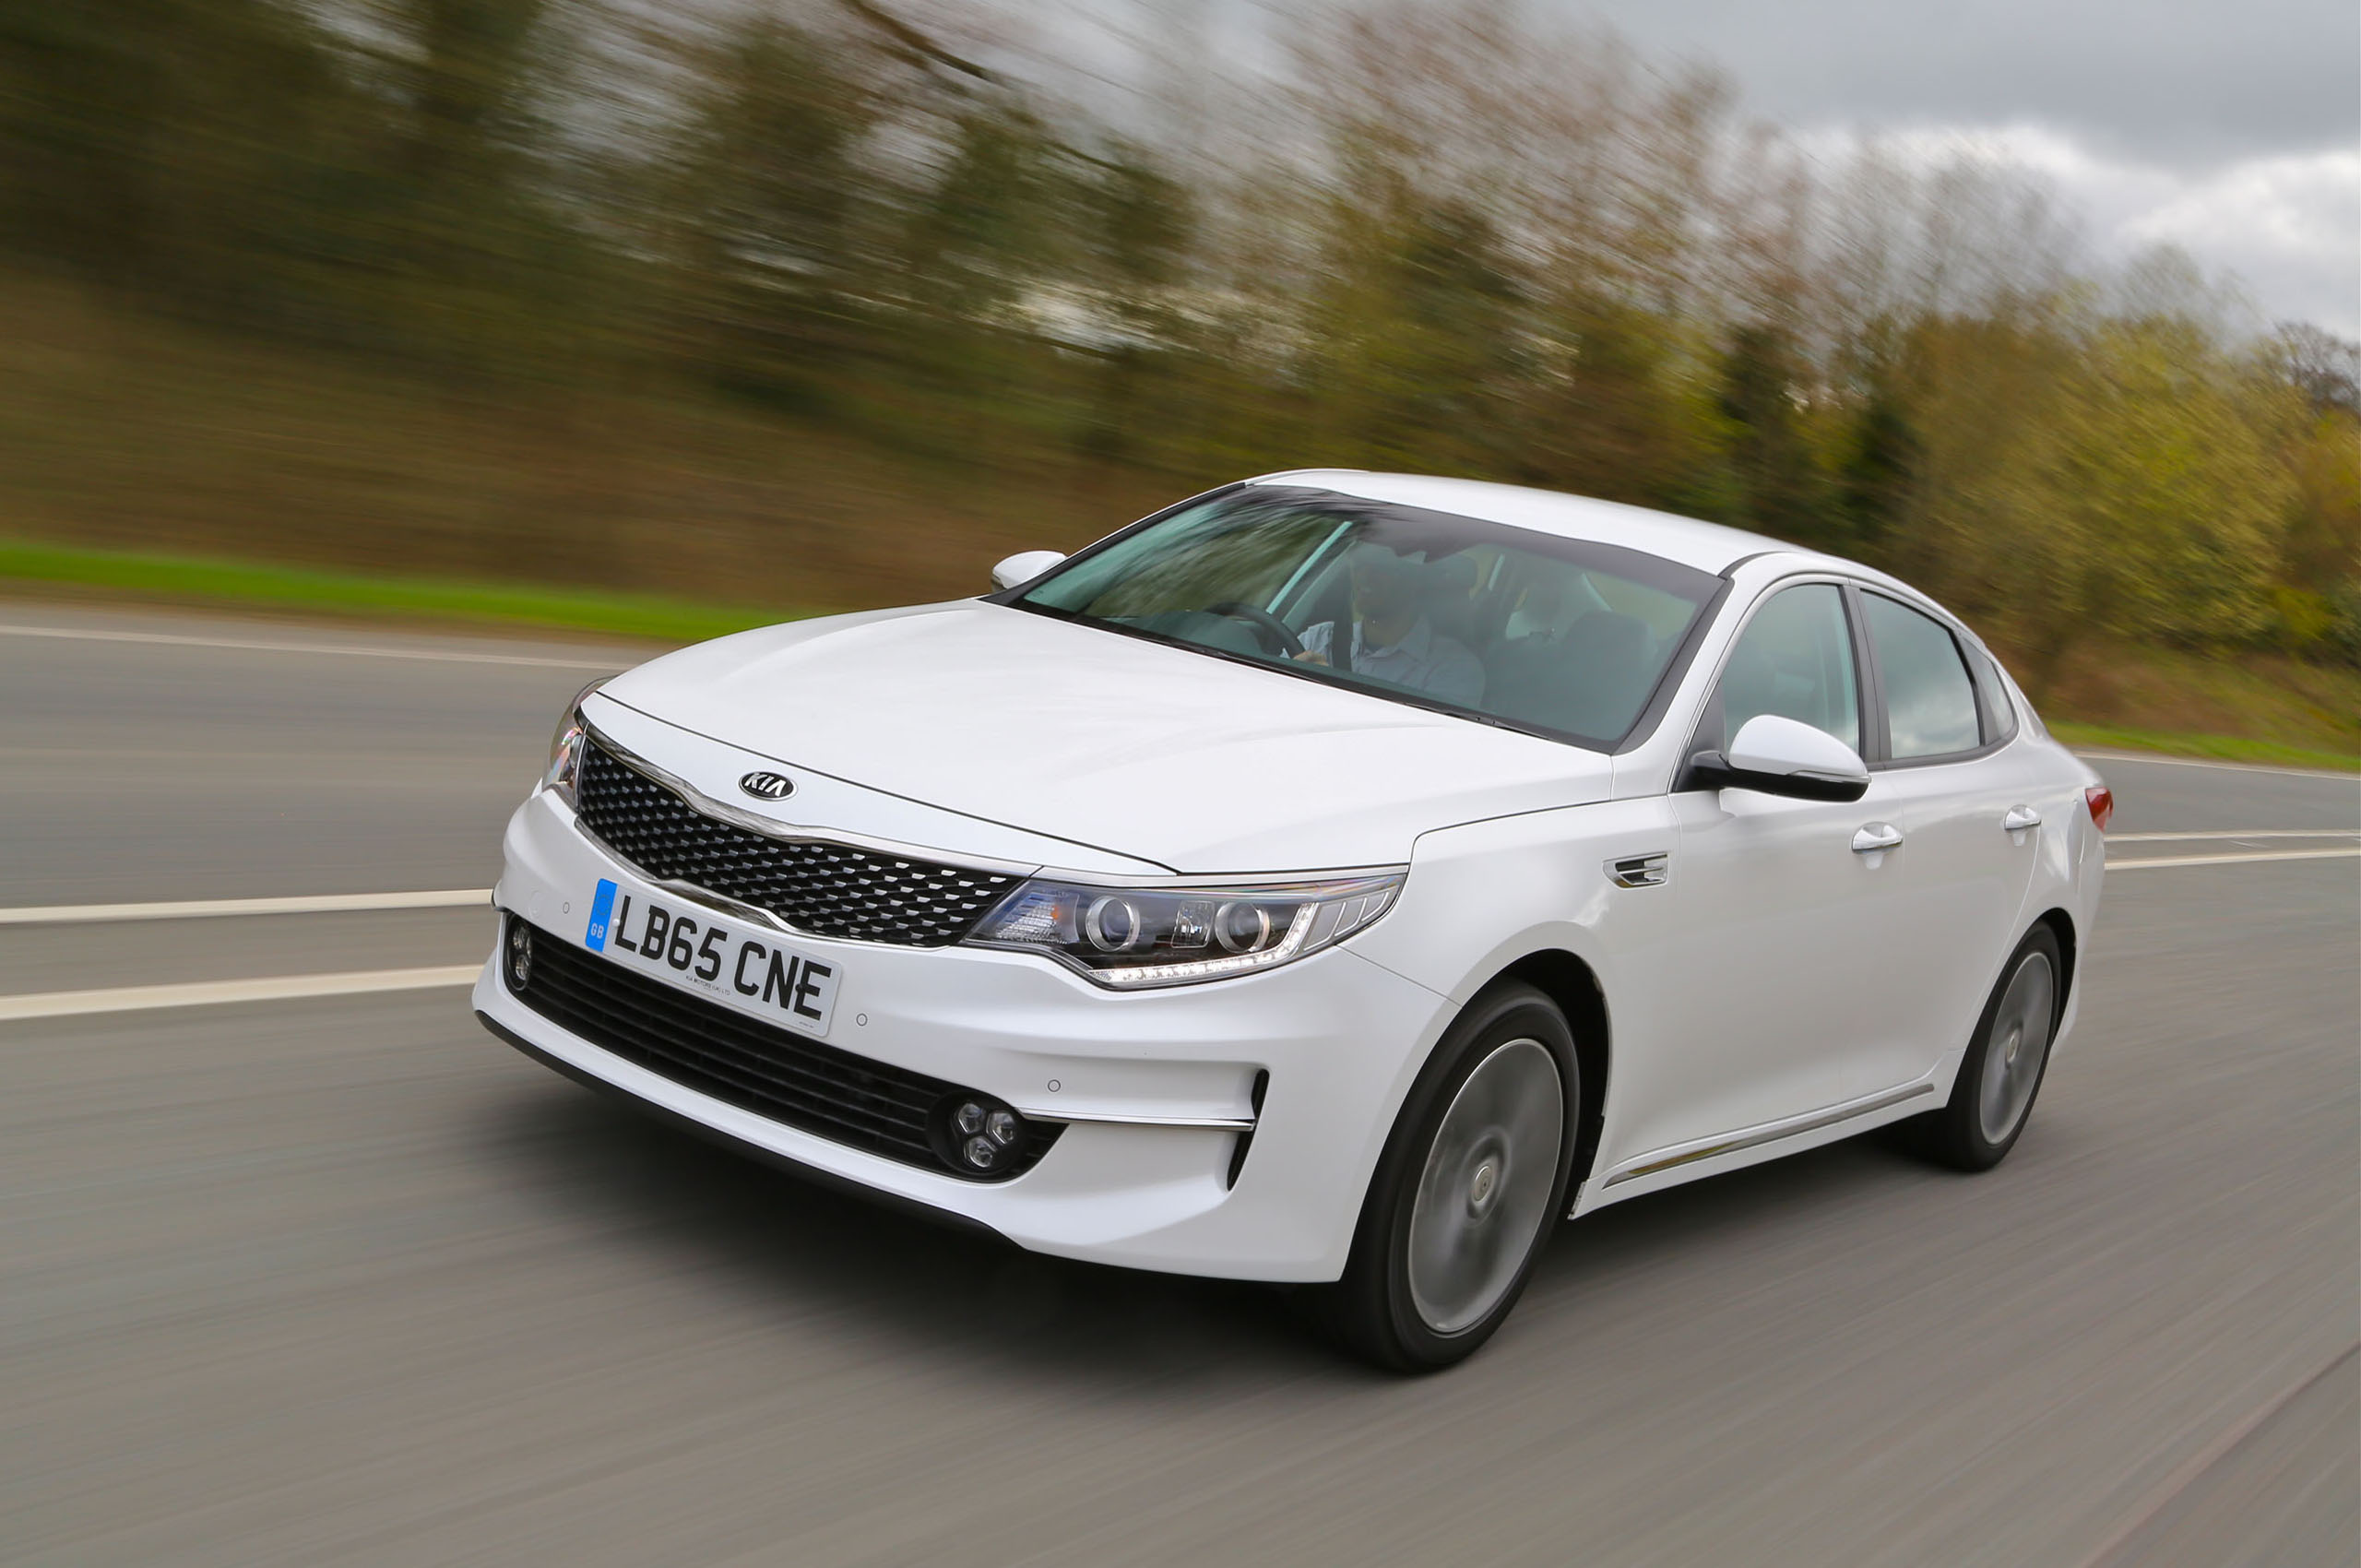 trend quarter first motion loaded three en motor review front optima in lx test kia fully news